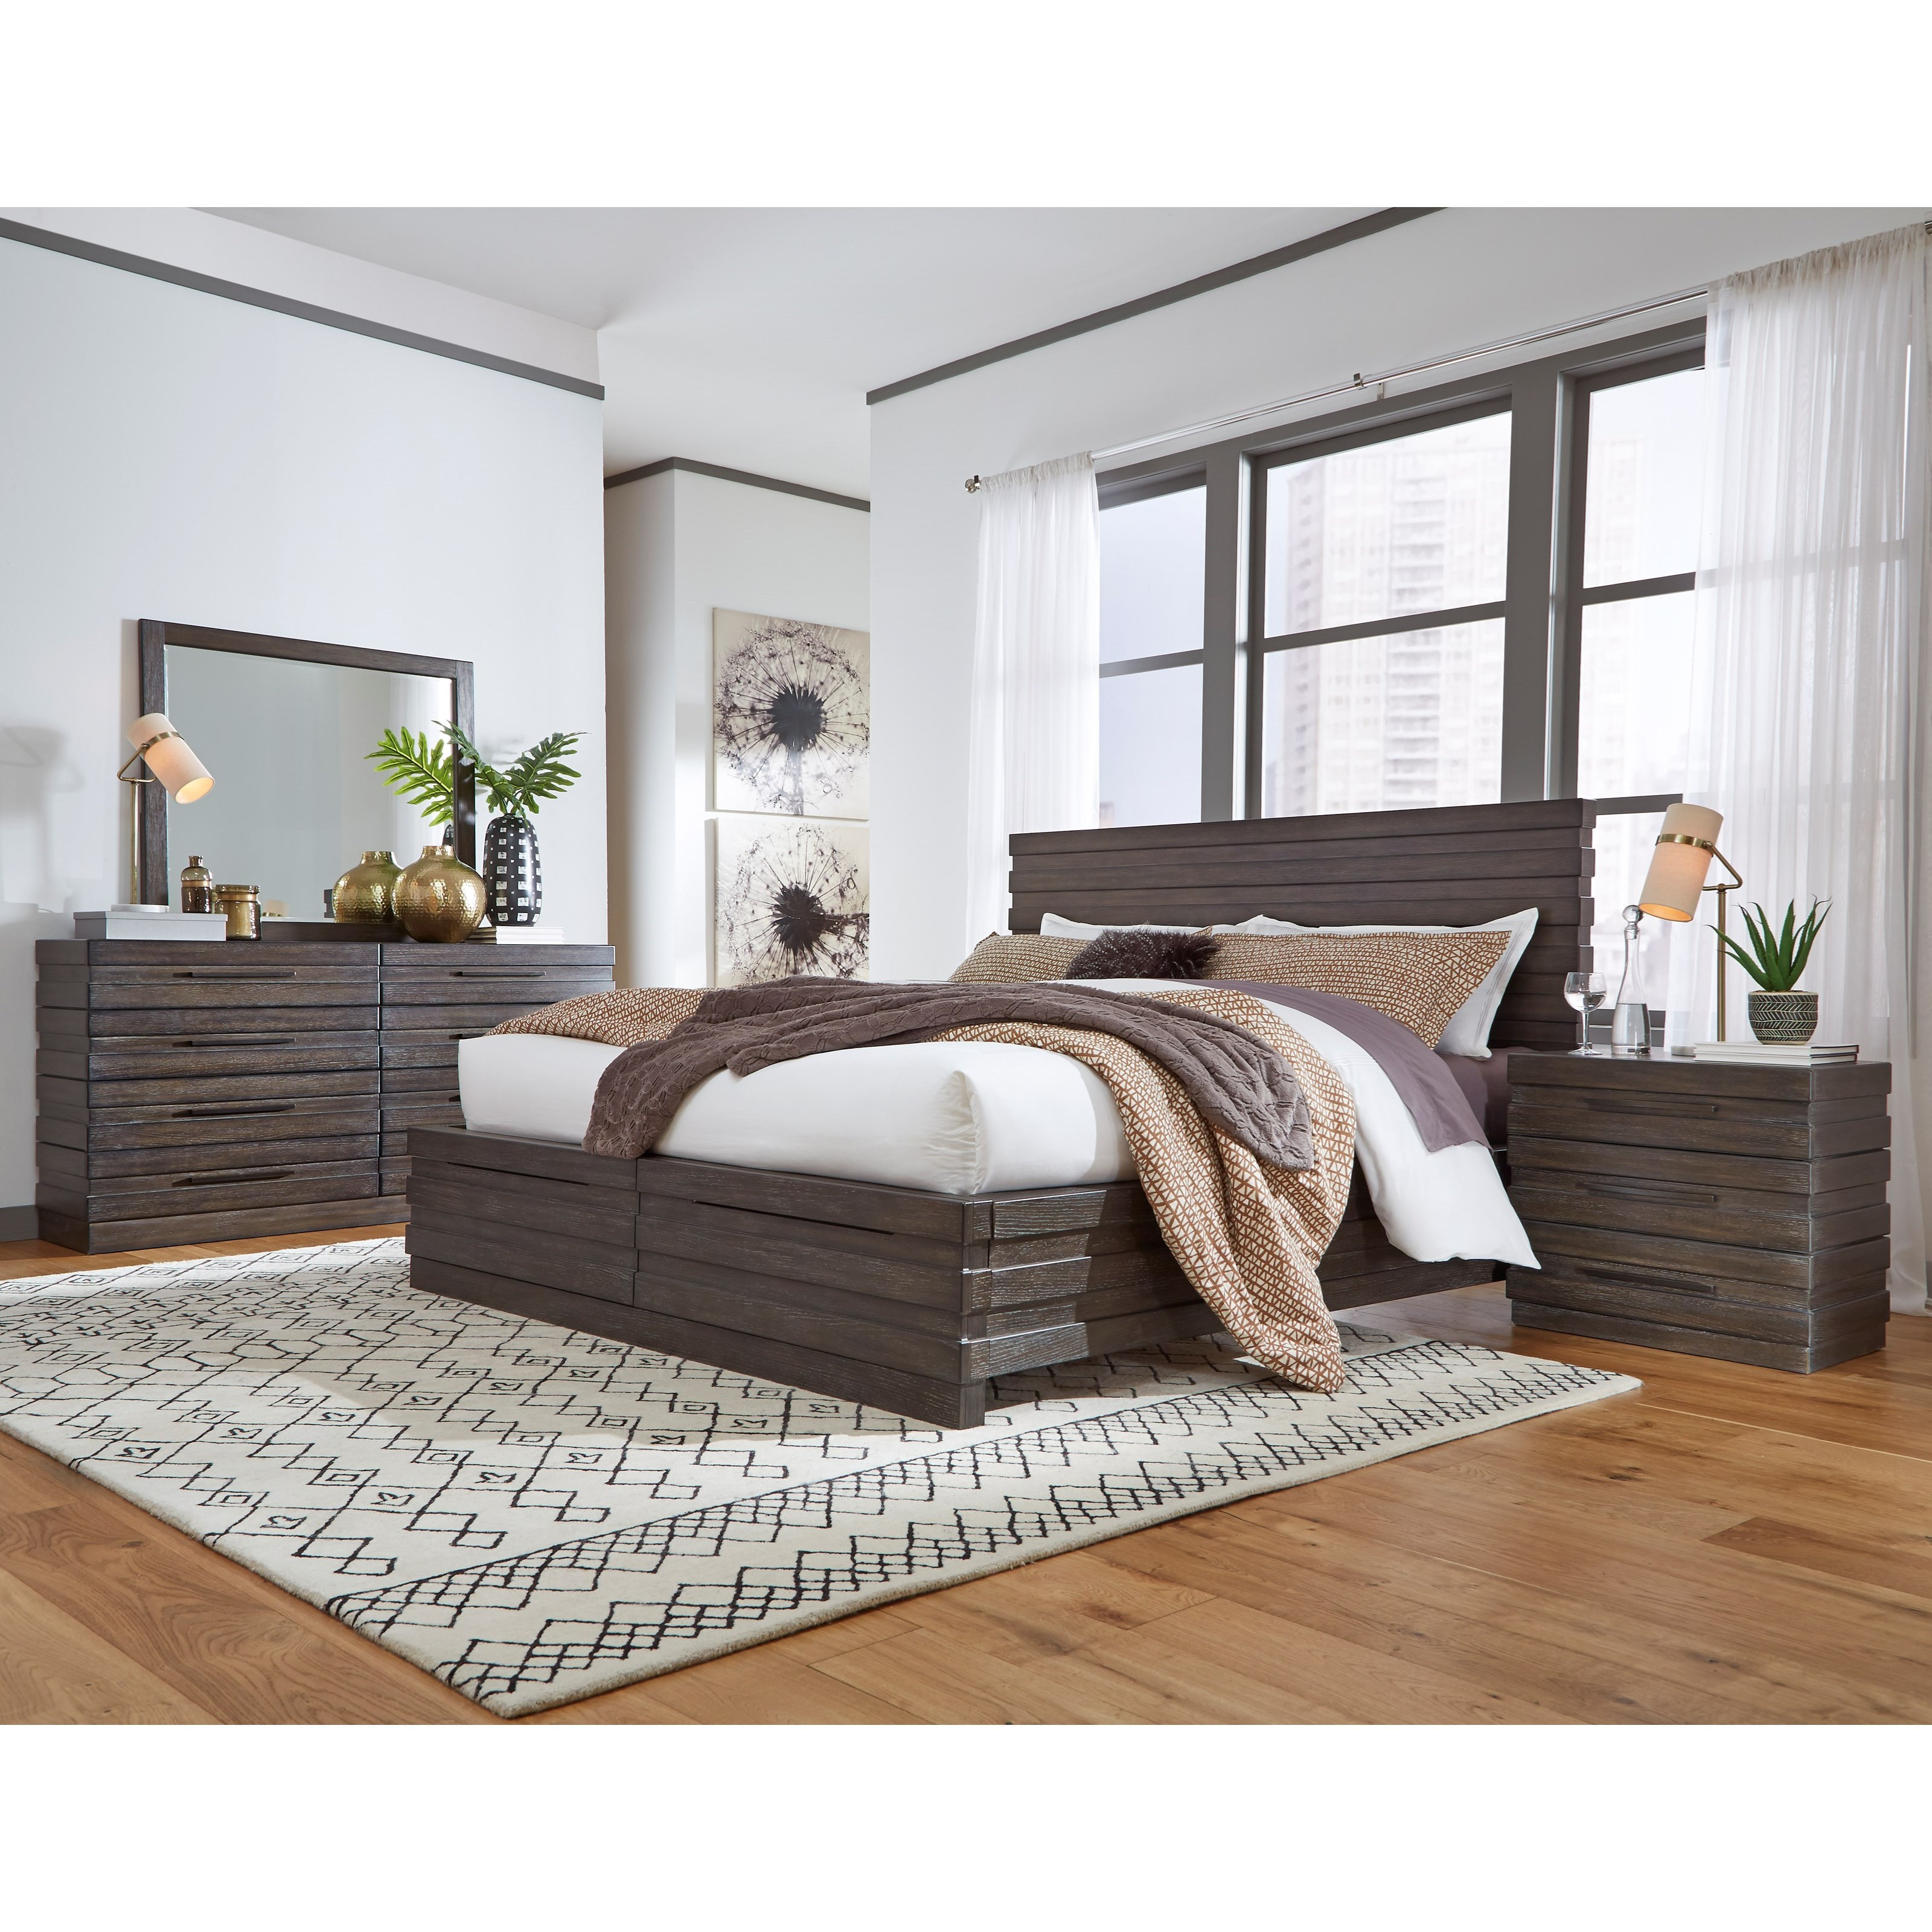 Stakhaus California King Bedroom Group by Samuel Lawrence at Carolina Direct